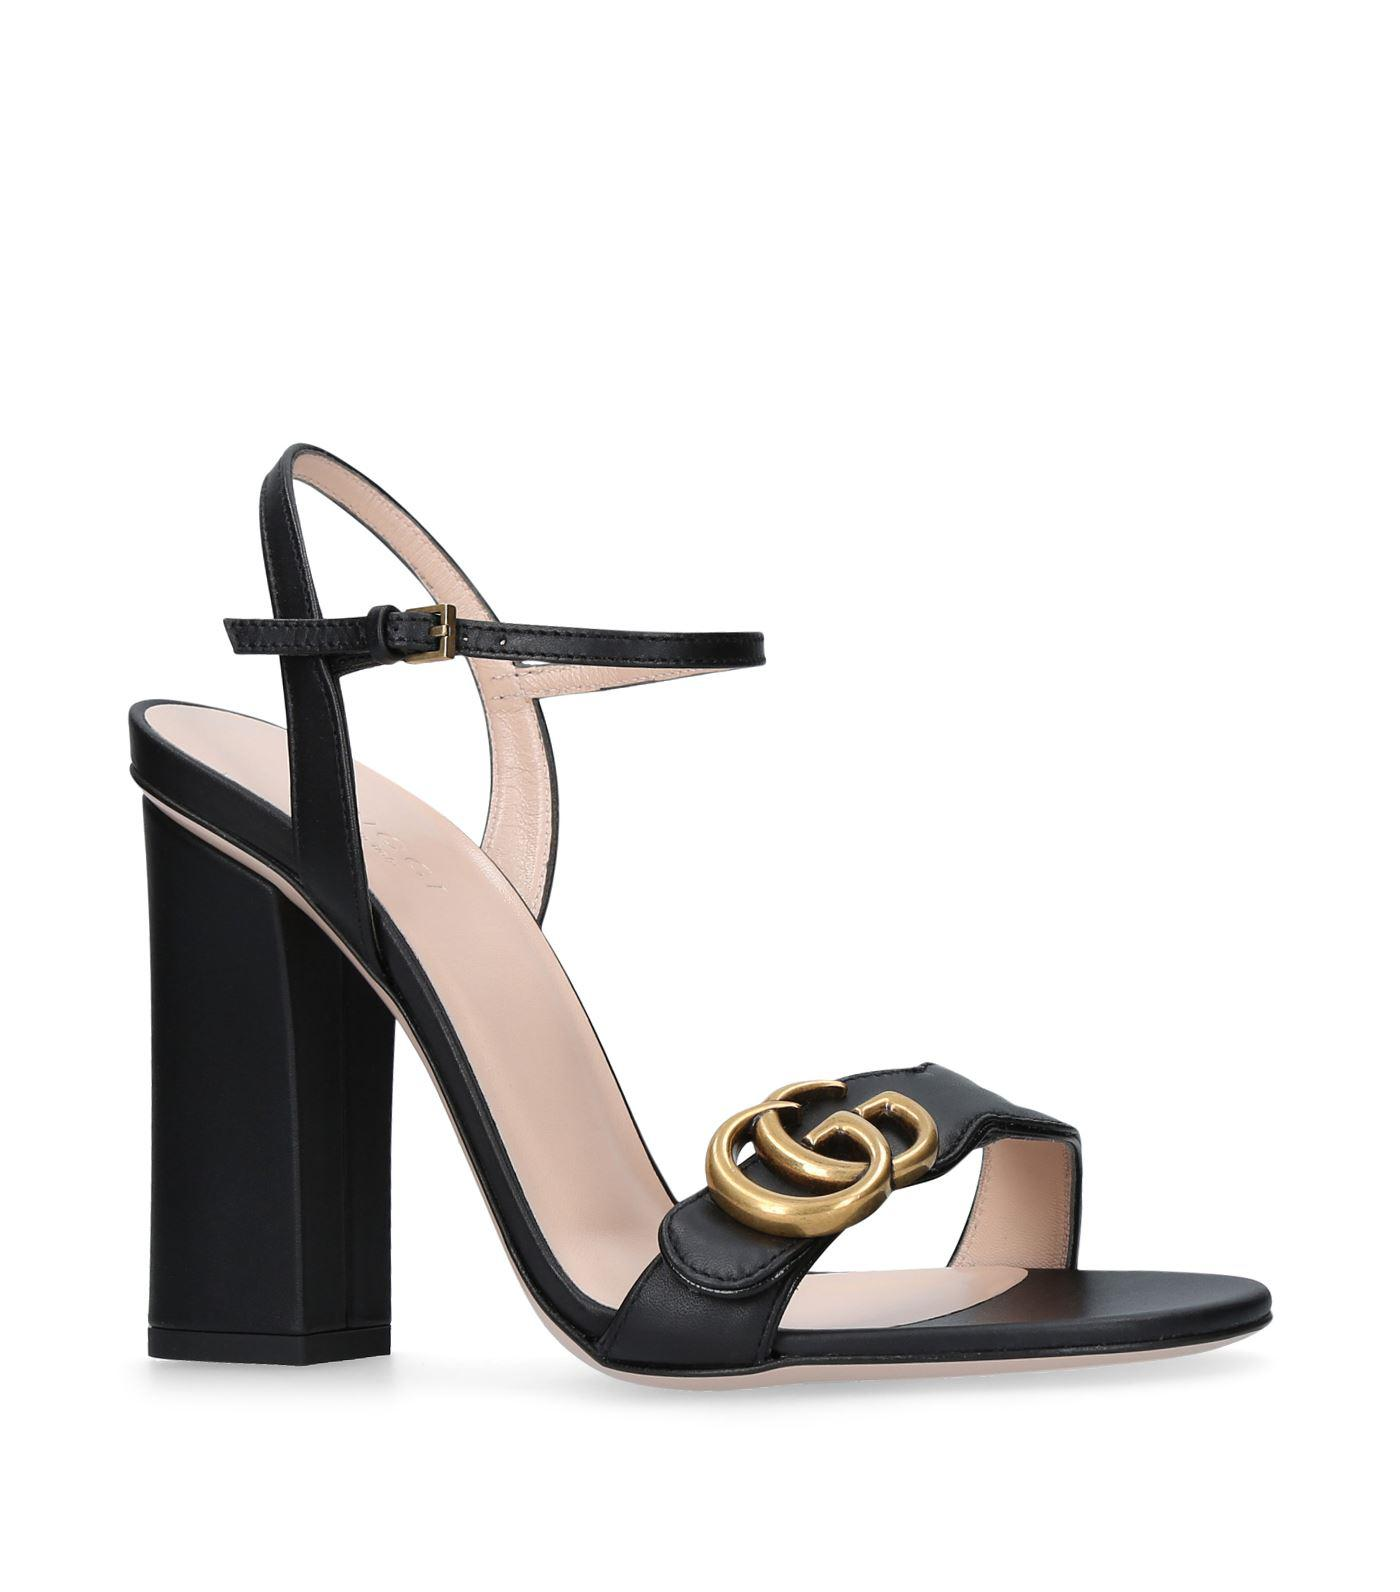 a37c6754ba50 Gucci Marmont Sandals 105 in Black - Lyst